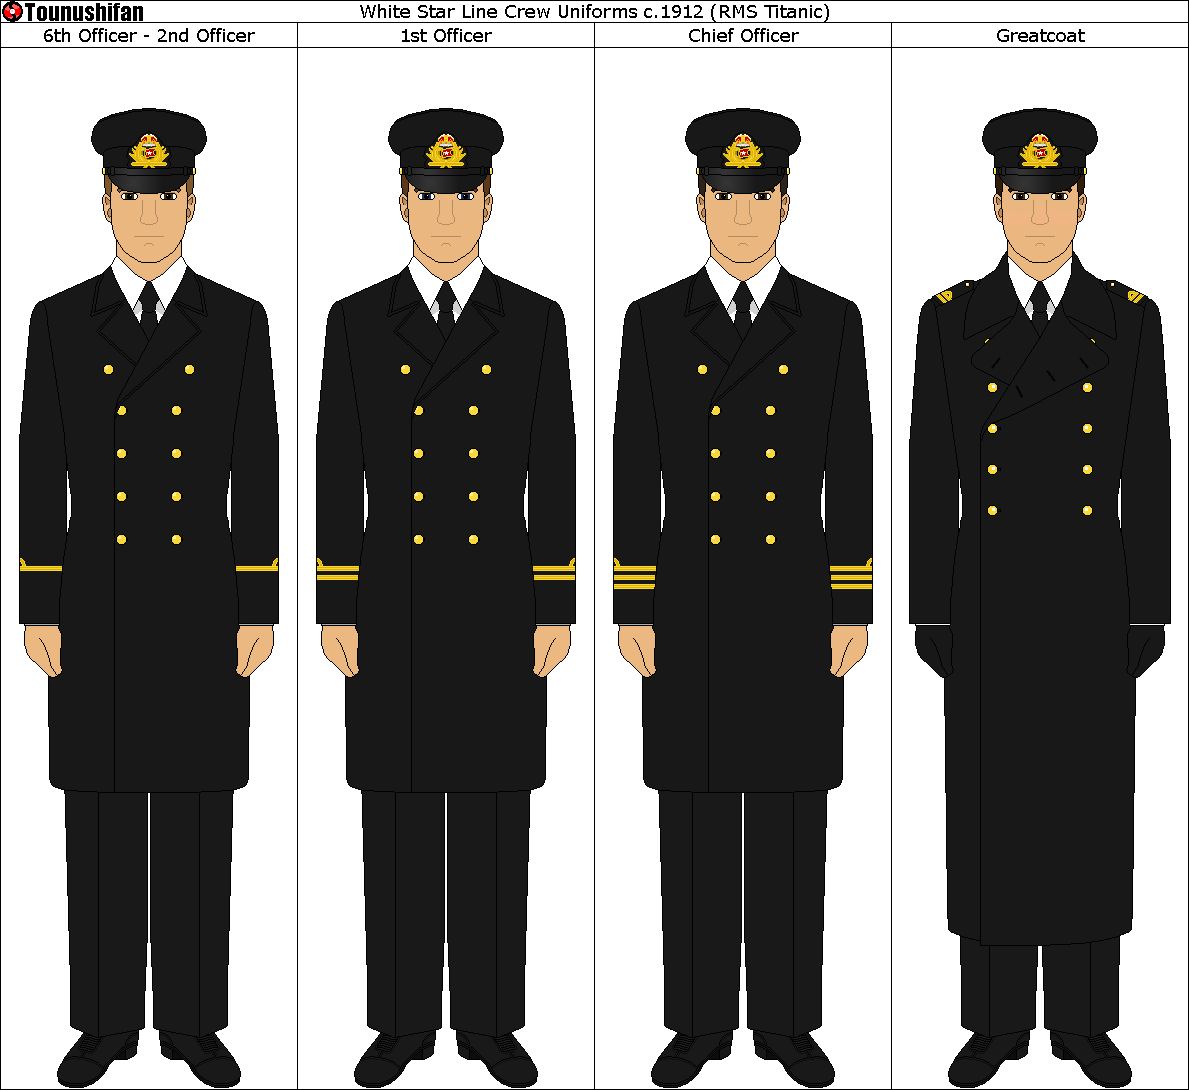 White Star Line Uniforms c.1912 [RMS Titanic Crew]